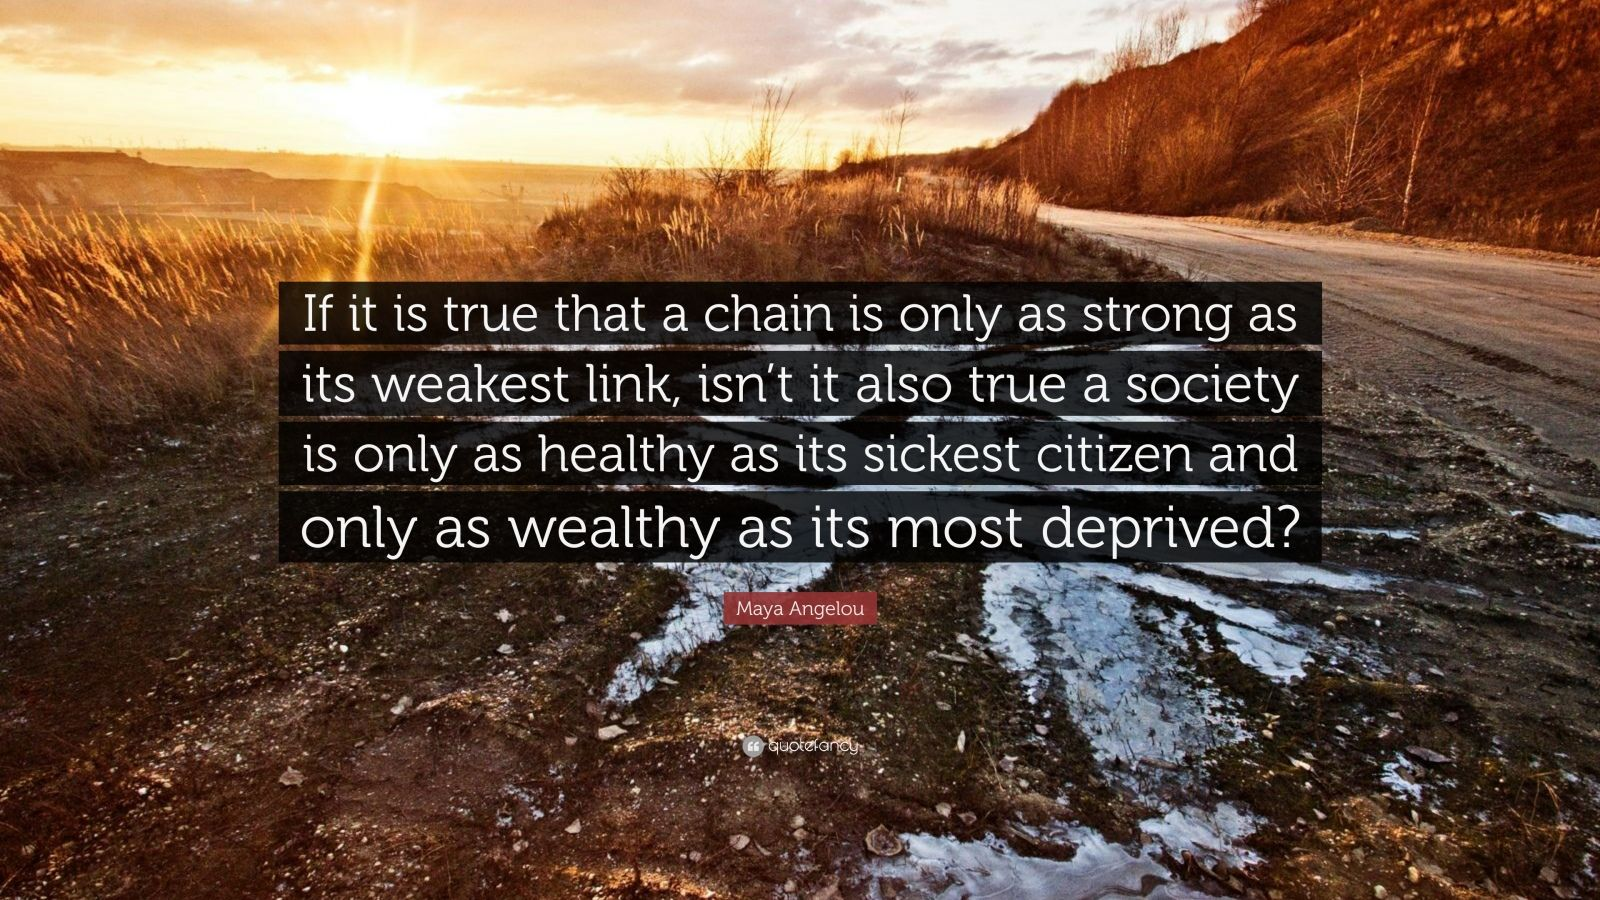 "Maya Angelou Quote: ""If it is true that a chain is only as strong as its weakest link, isn't it also true a society is only as healthy as its sickest citizen and only as wealthy as its most deprived?"""